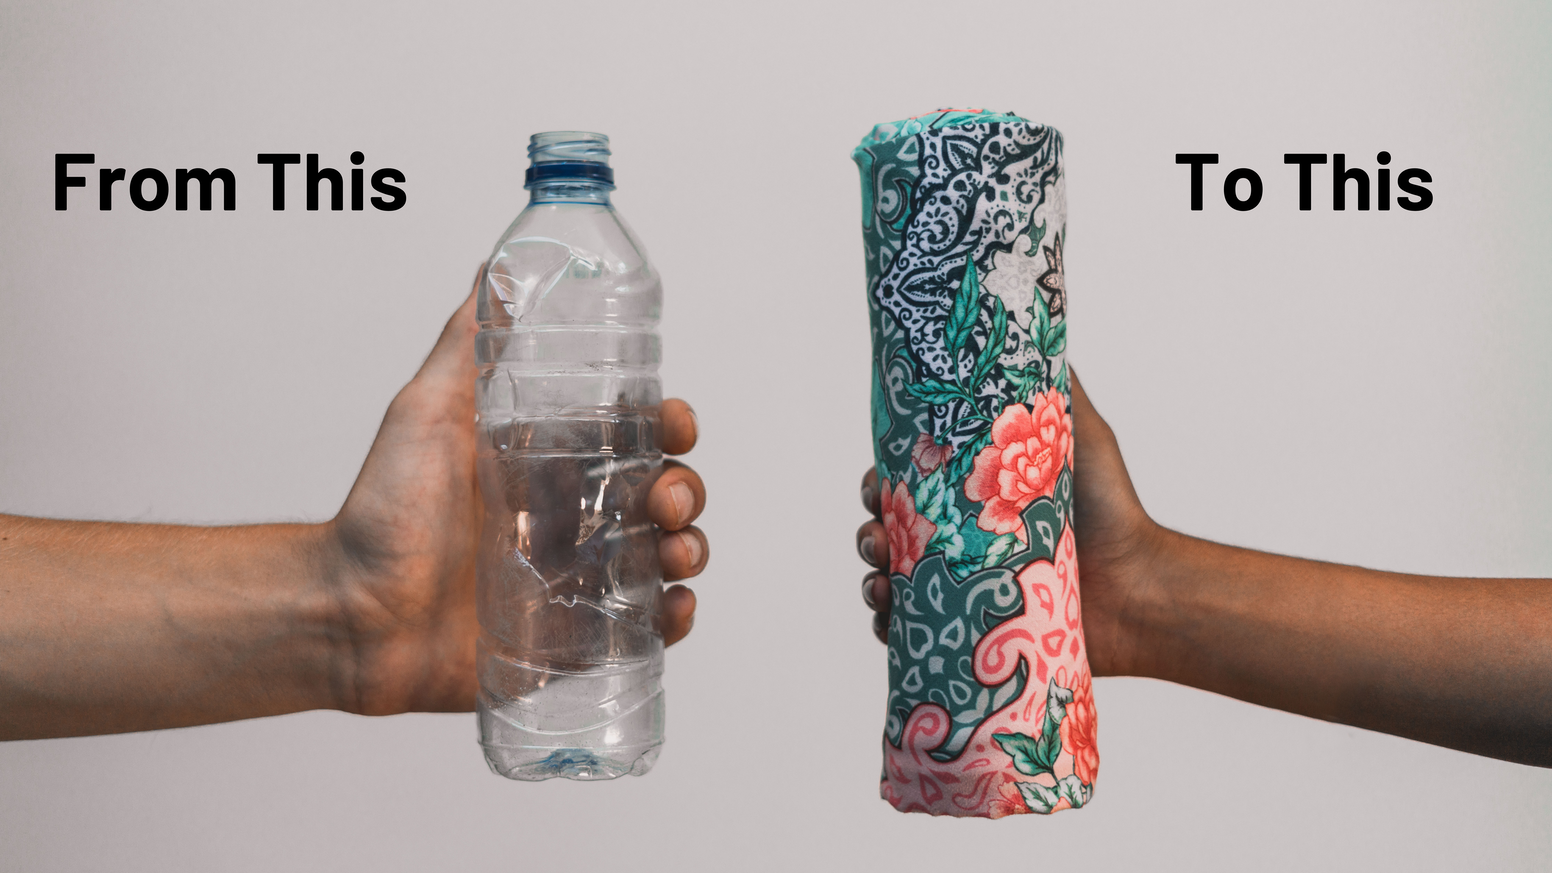 Made from 85% recycled plastic bottles. The most stylish, soft, functional, and versatile towel for travel and everyday adventures